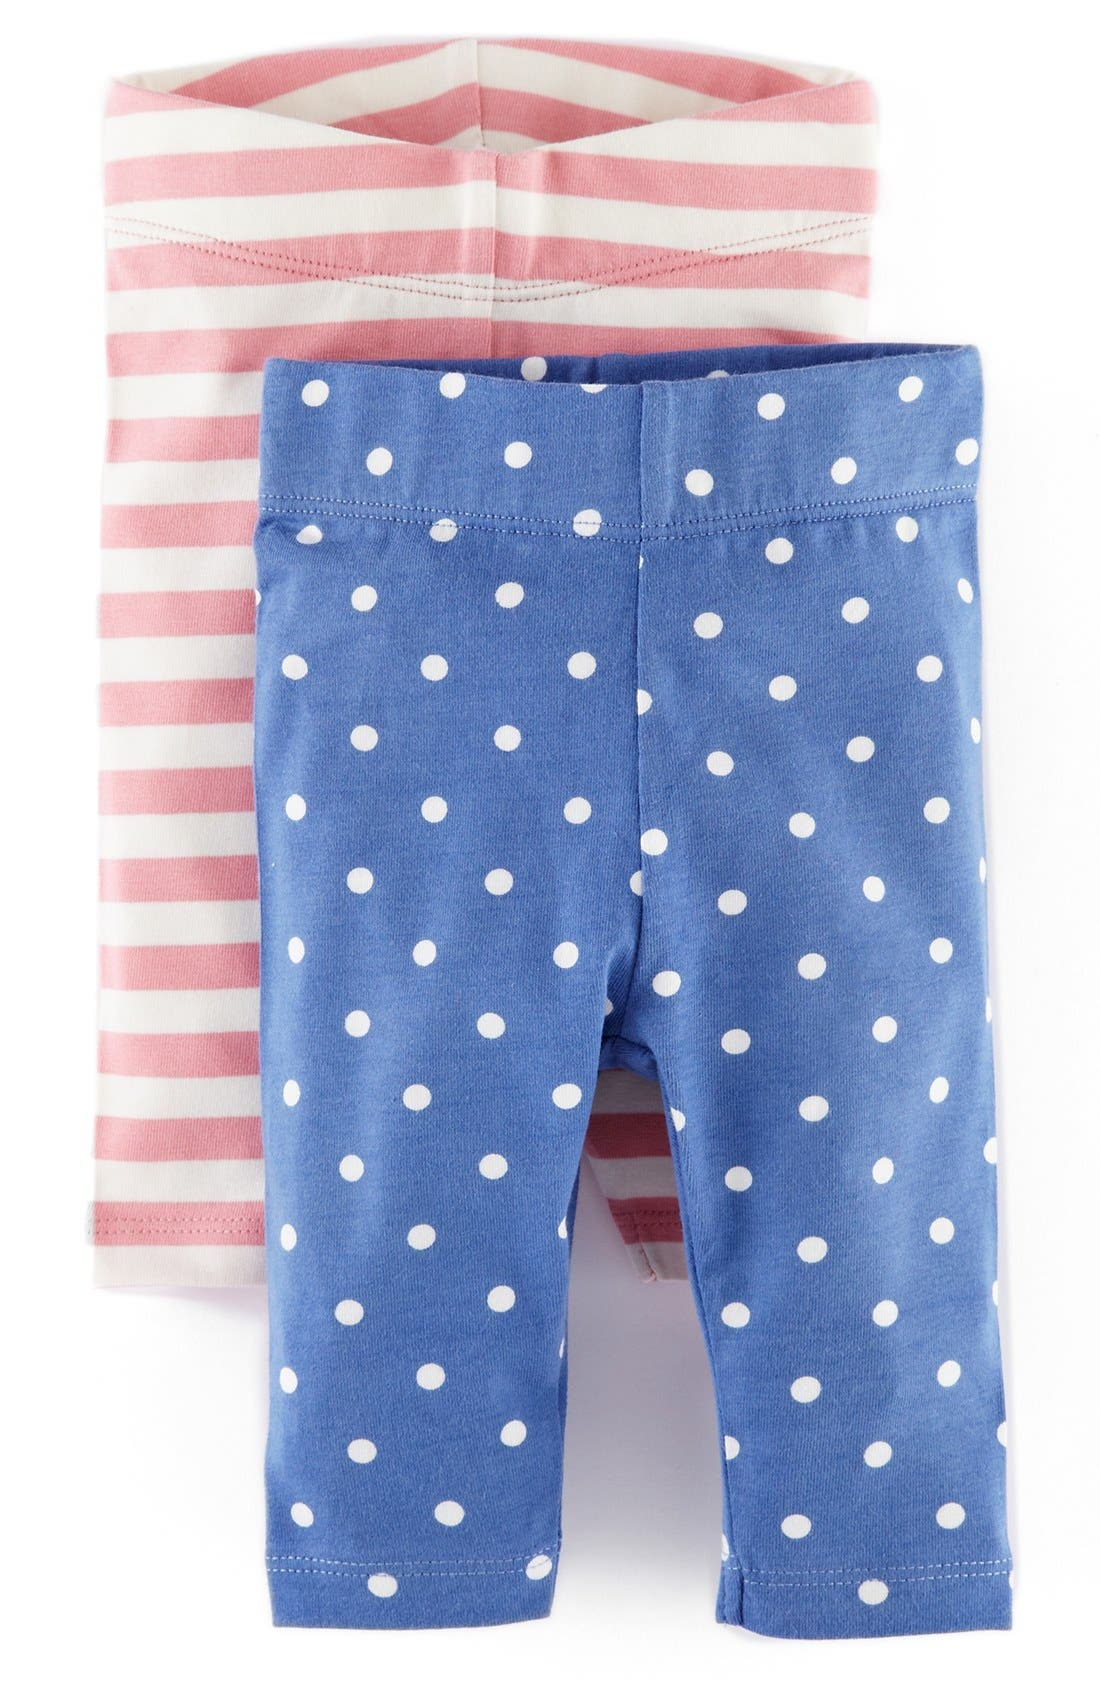 Main Image - Mini Boden Print Leggings (2-Pack) (Baby Girls)